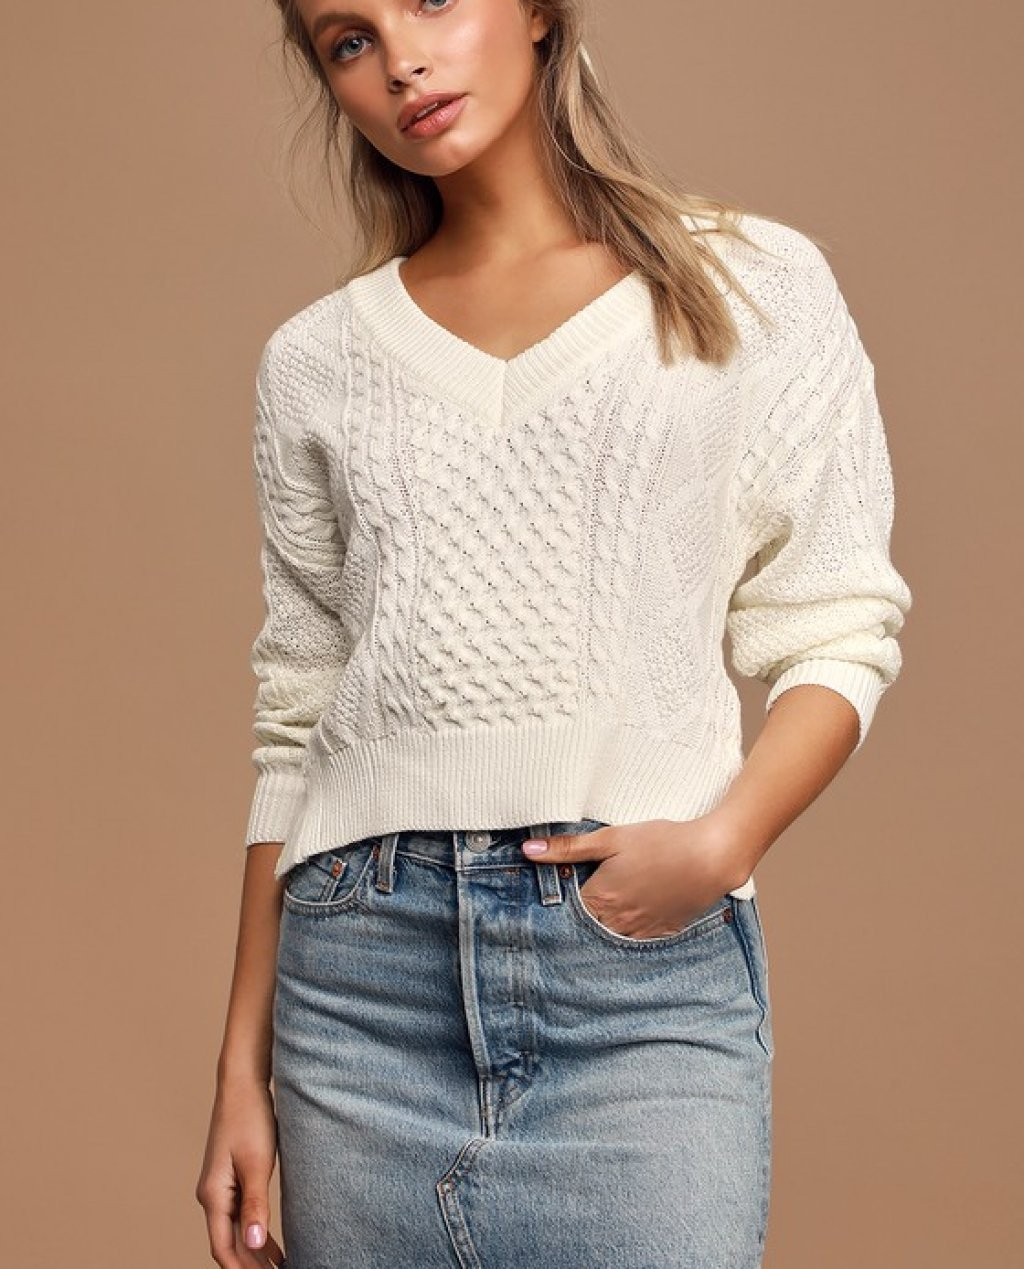 Ties That Bind Ivory Cable Knit Cutout Tie-Back Knit Sweater